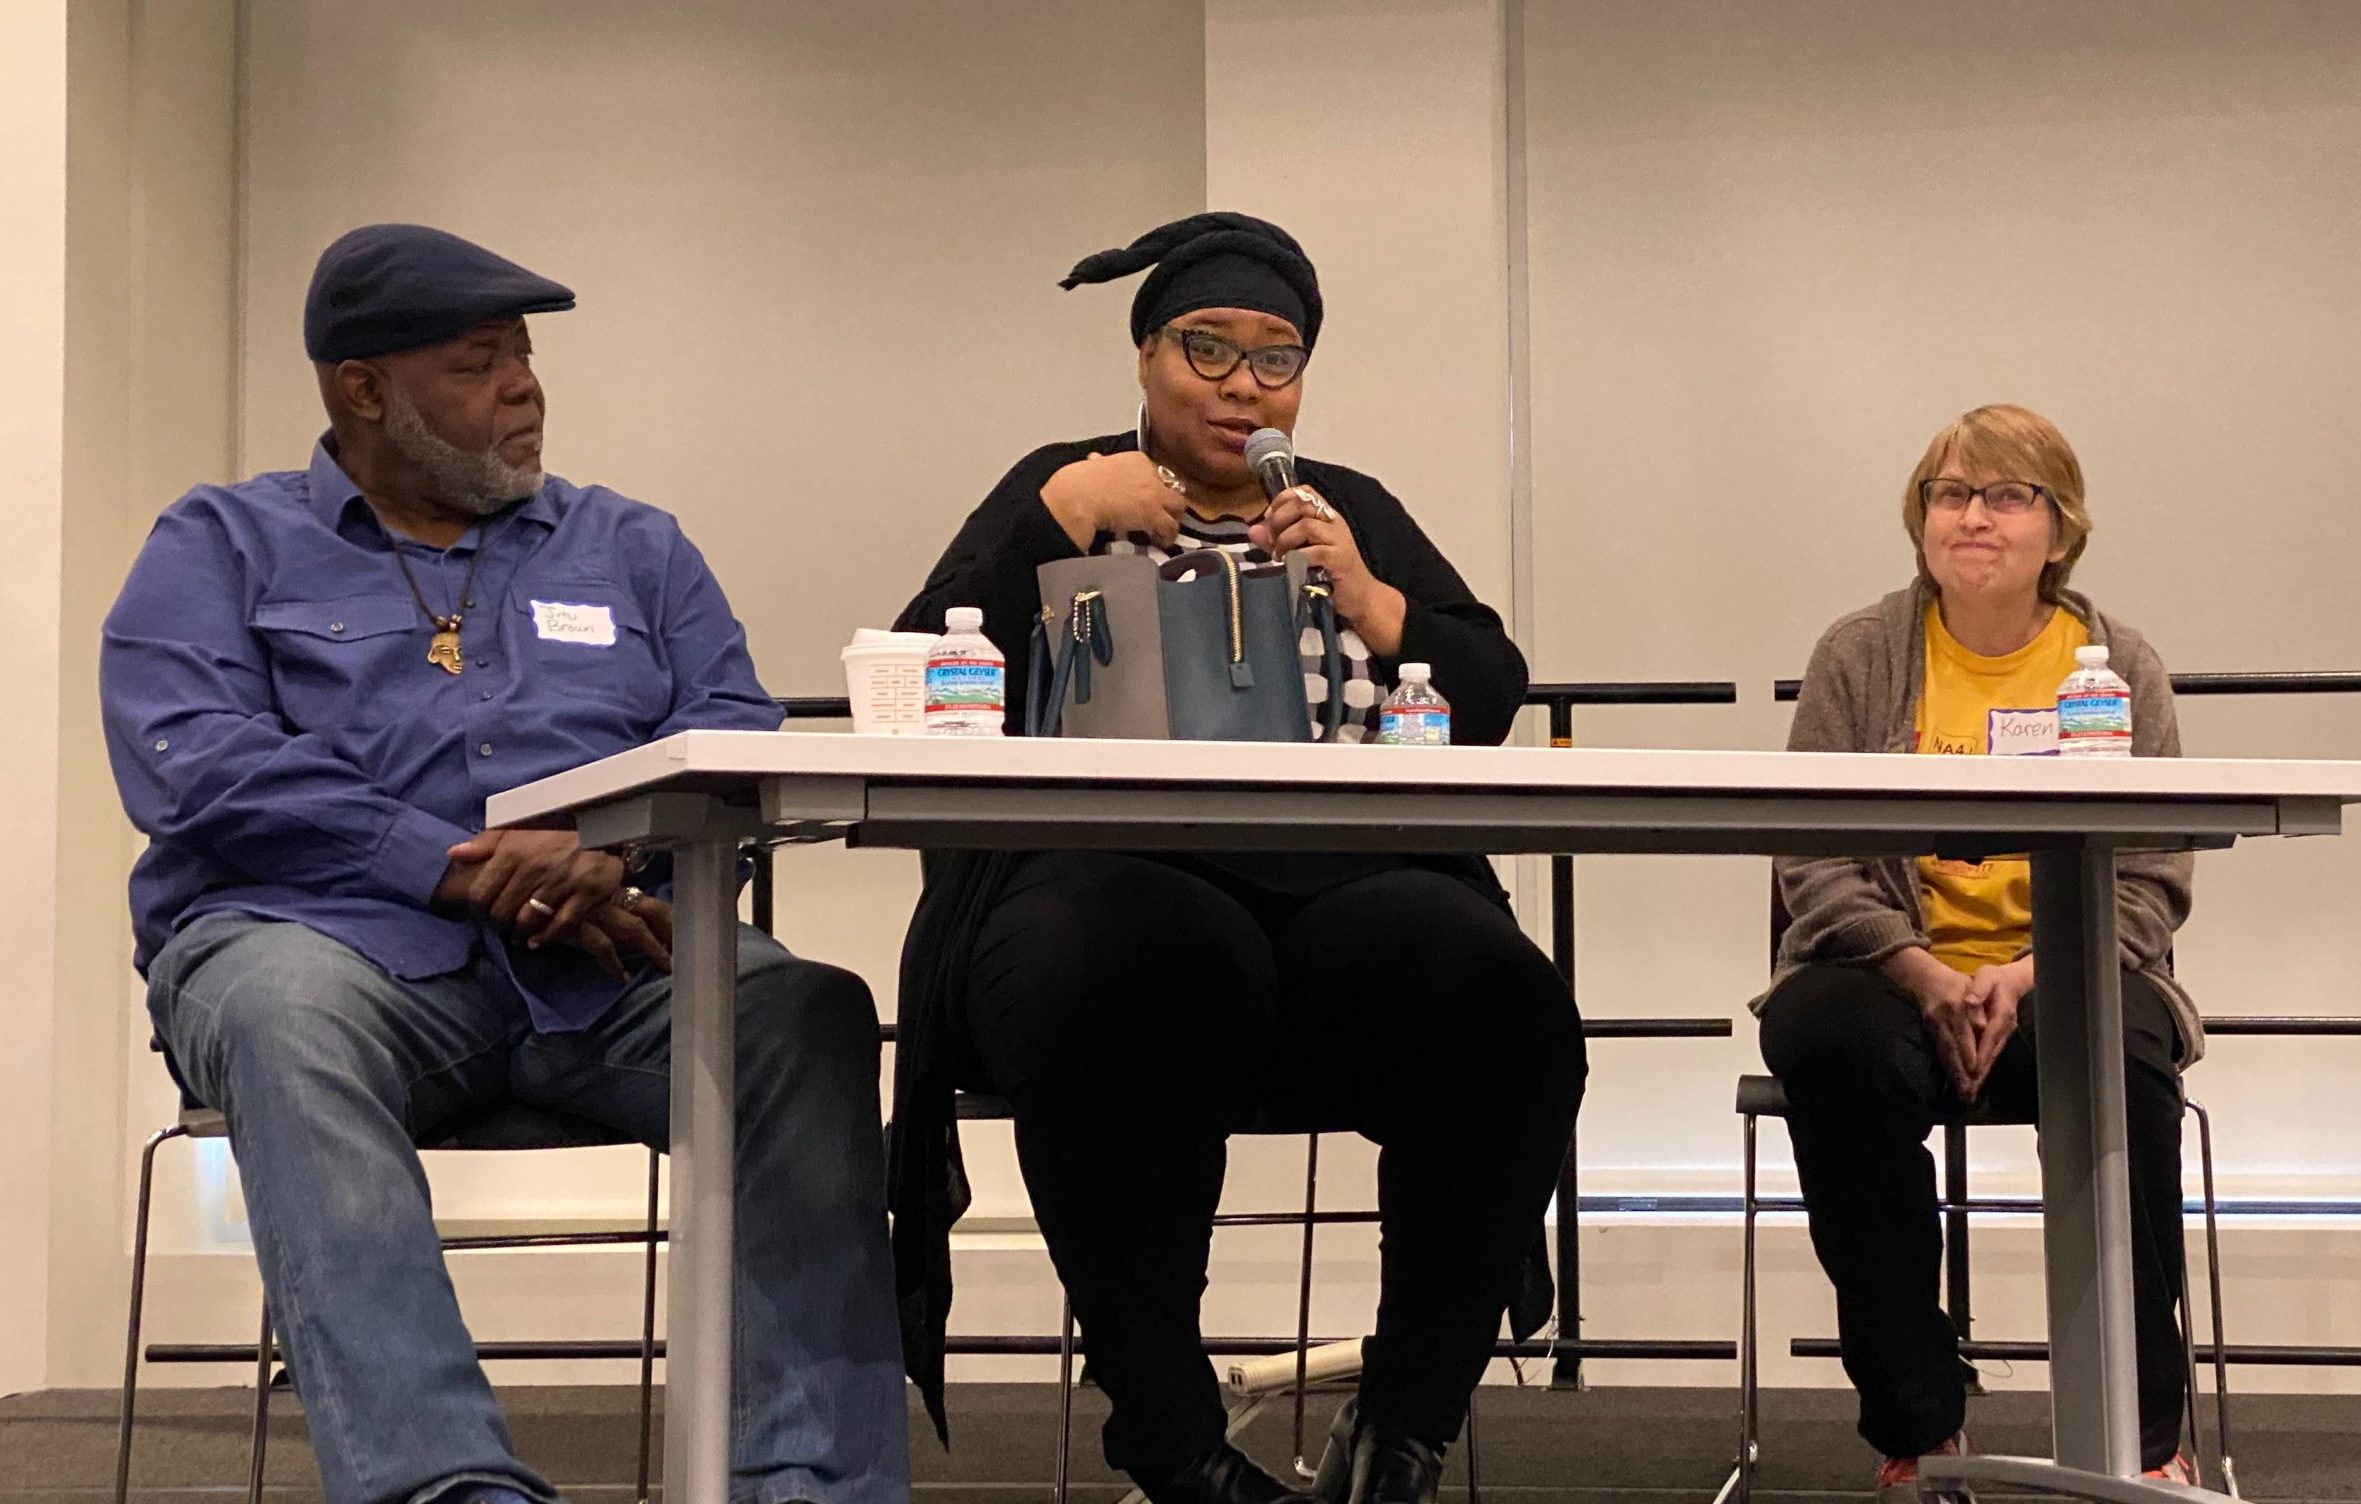 Jitu Brown, director of Journey 4 Justice; Alderman Jeanette Taylor of the 20th Ward; and Karen Zaccor of Northside Action for Justice and teacher at Uplift Community High School speak about the historic importance of Local School Councils, at a meeting Saturday at the Chicago teachers union offices.